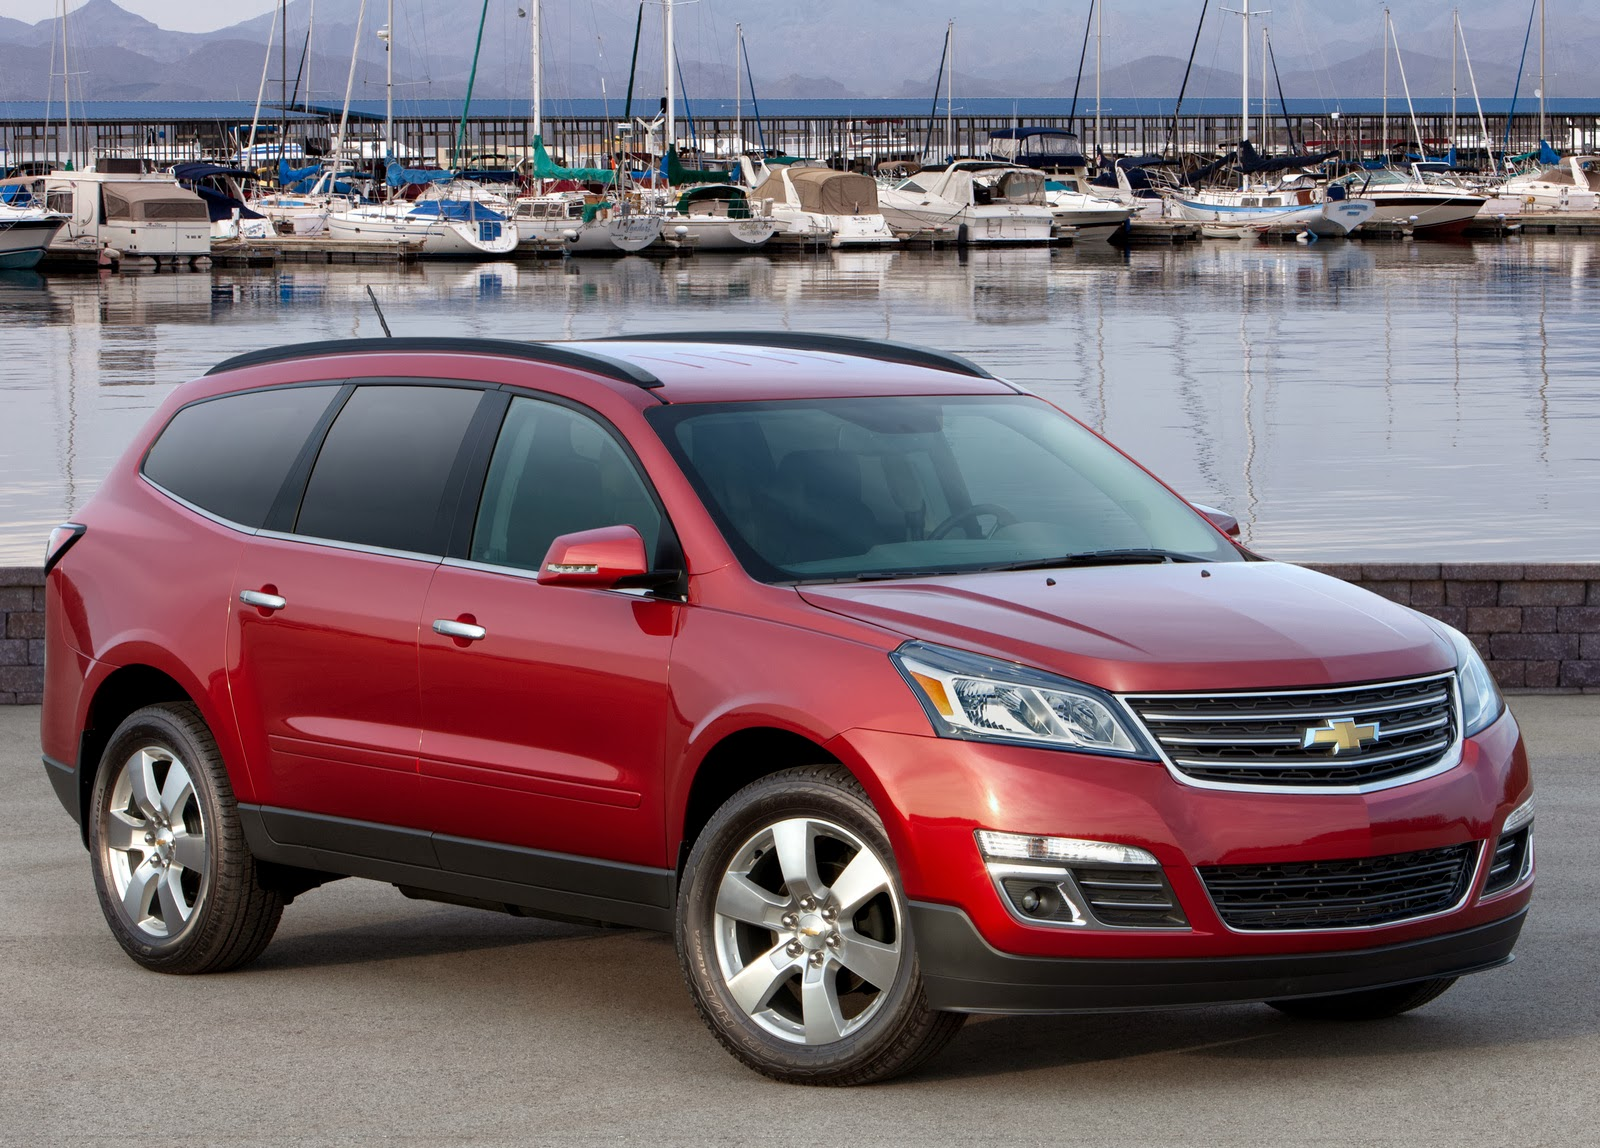 Impala and Traverse Named KBB.com's 12 Best Family Cars of 2014